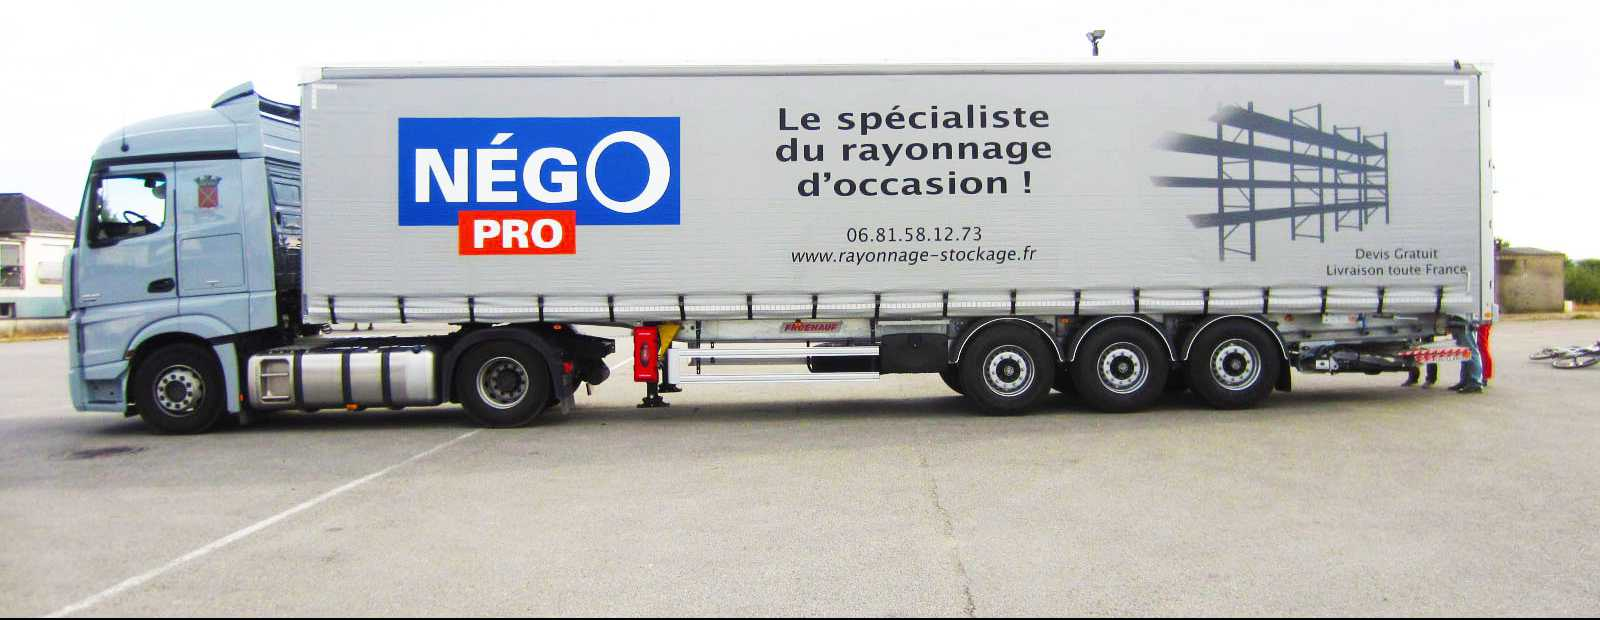 camion_negopro_site